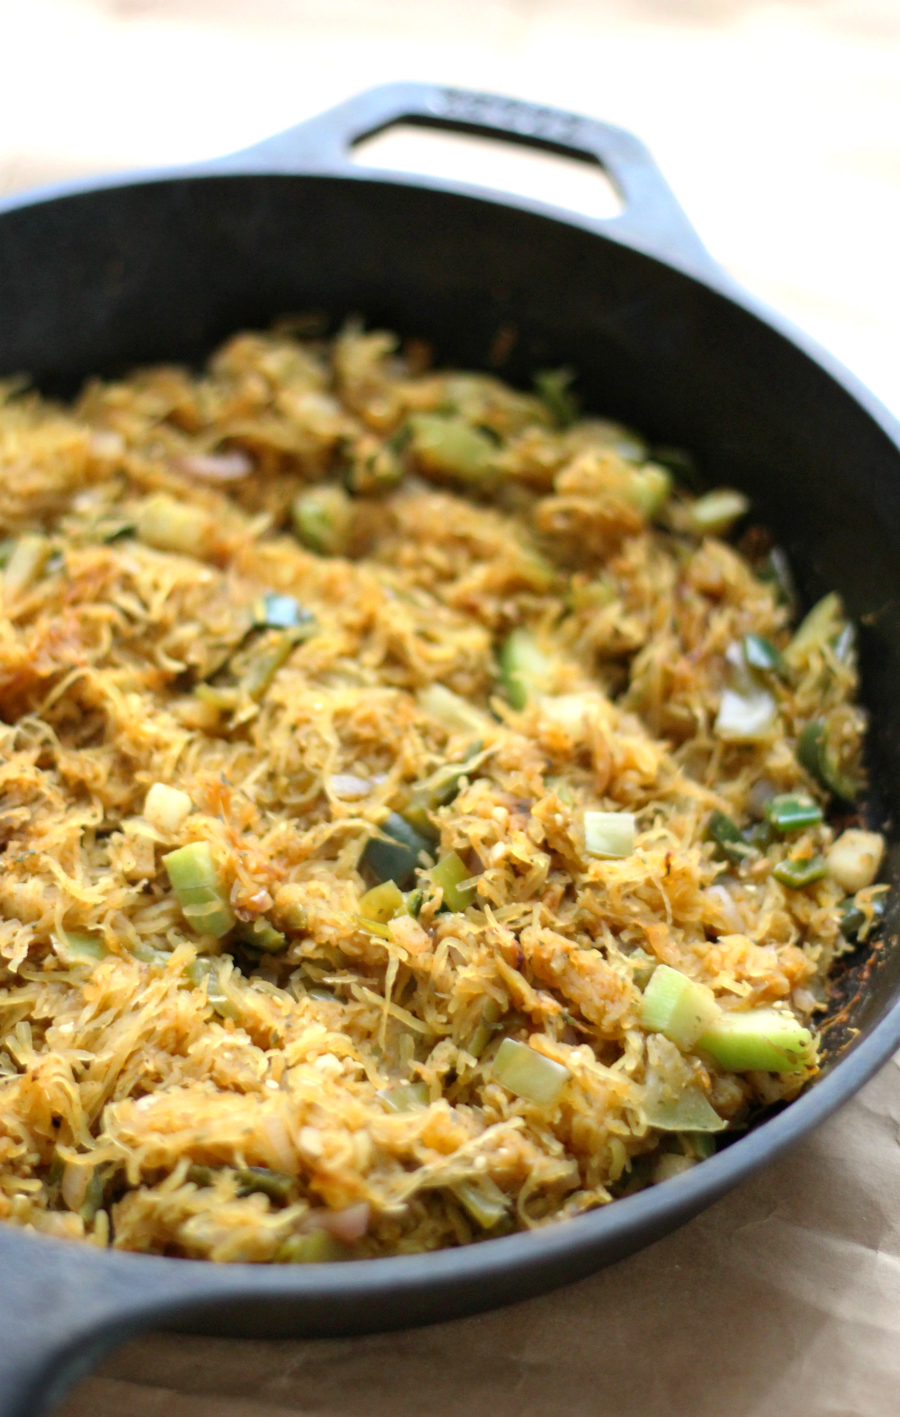 Mexican Spaghetti Squash Hash Browns (Gluten-Free, Vegan, Paleo) | Strength and Sunshine @RebeccaGF666 A lighter take on the savory breakfast hash! This Mexican Spaghetti Squash Hash Browns recipe is gluten-free, vegan, paleo, allergy-friendly, and easy to whip up! A healthy and veggie-packed meal to start your day off right and with a little spice!